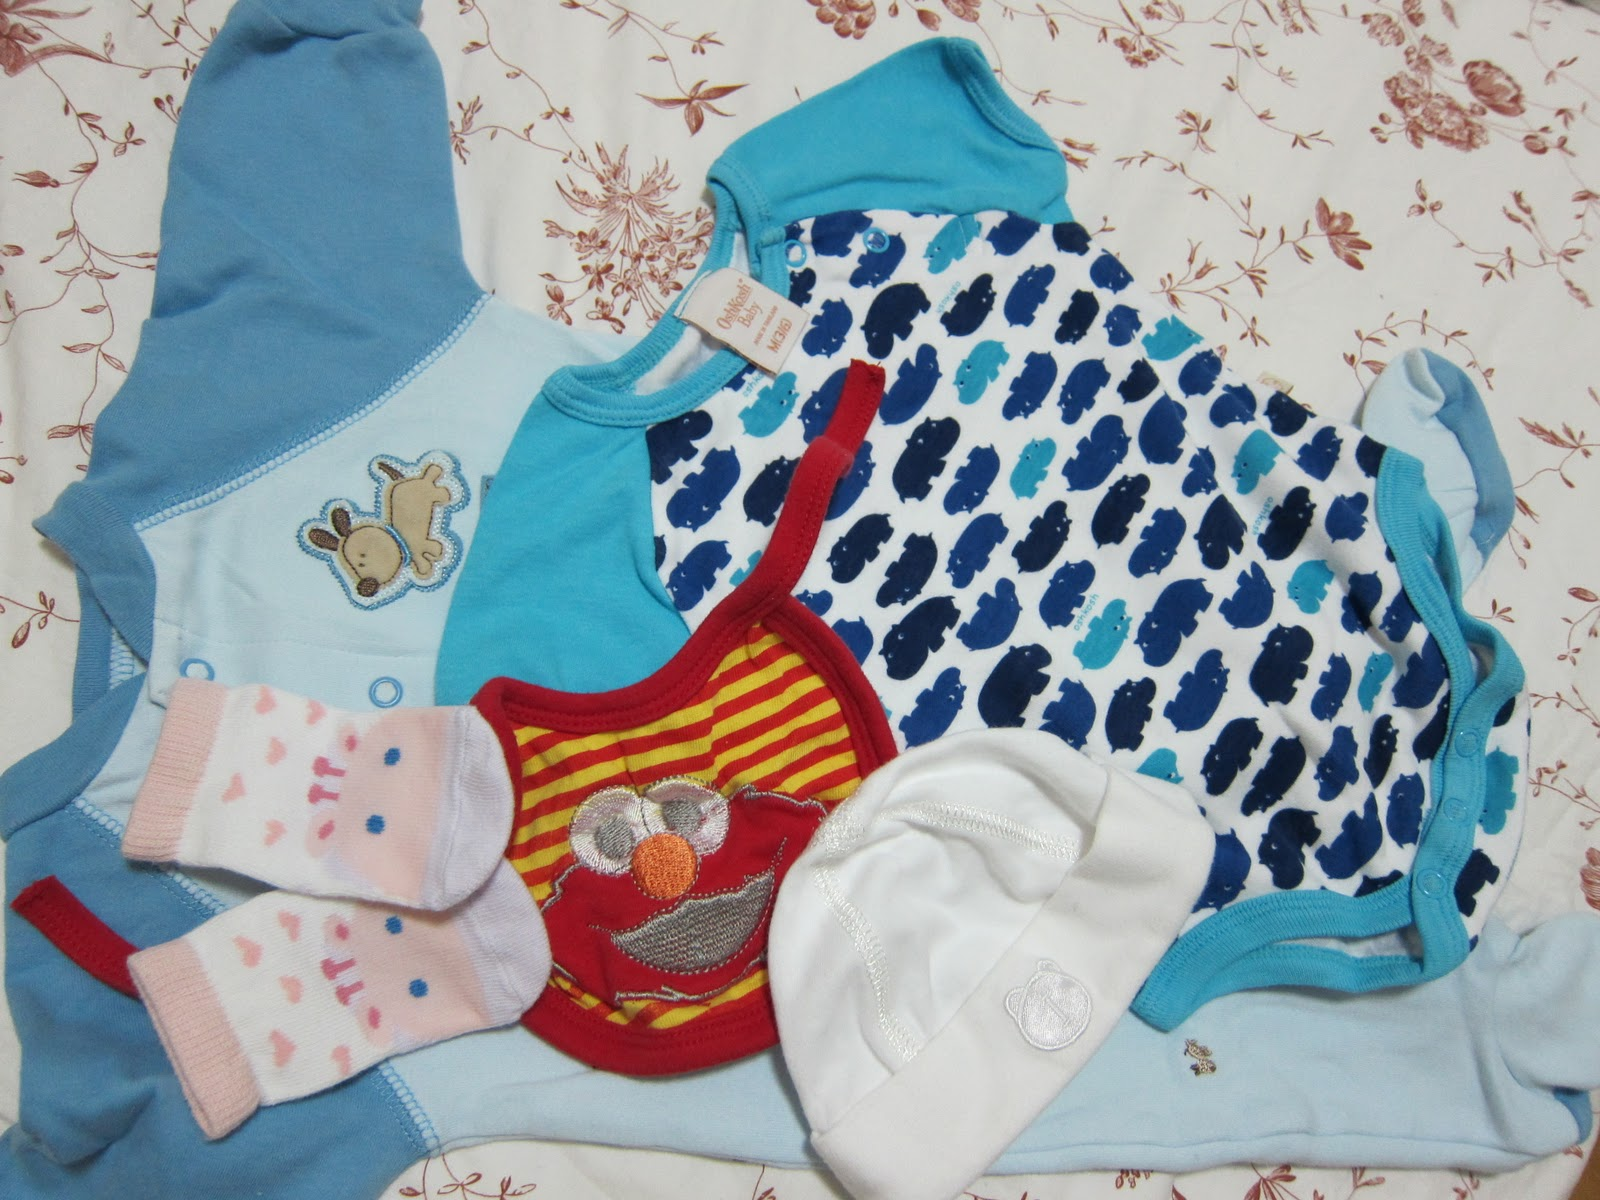 baby guess clothes. Some of the baby clothes we